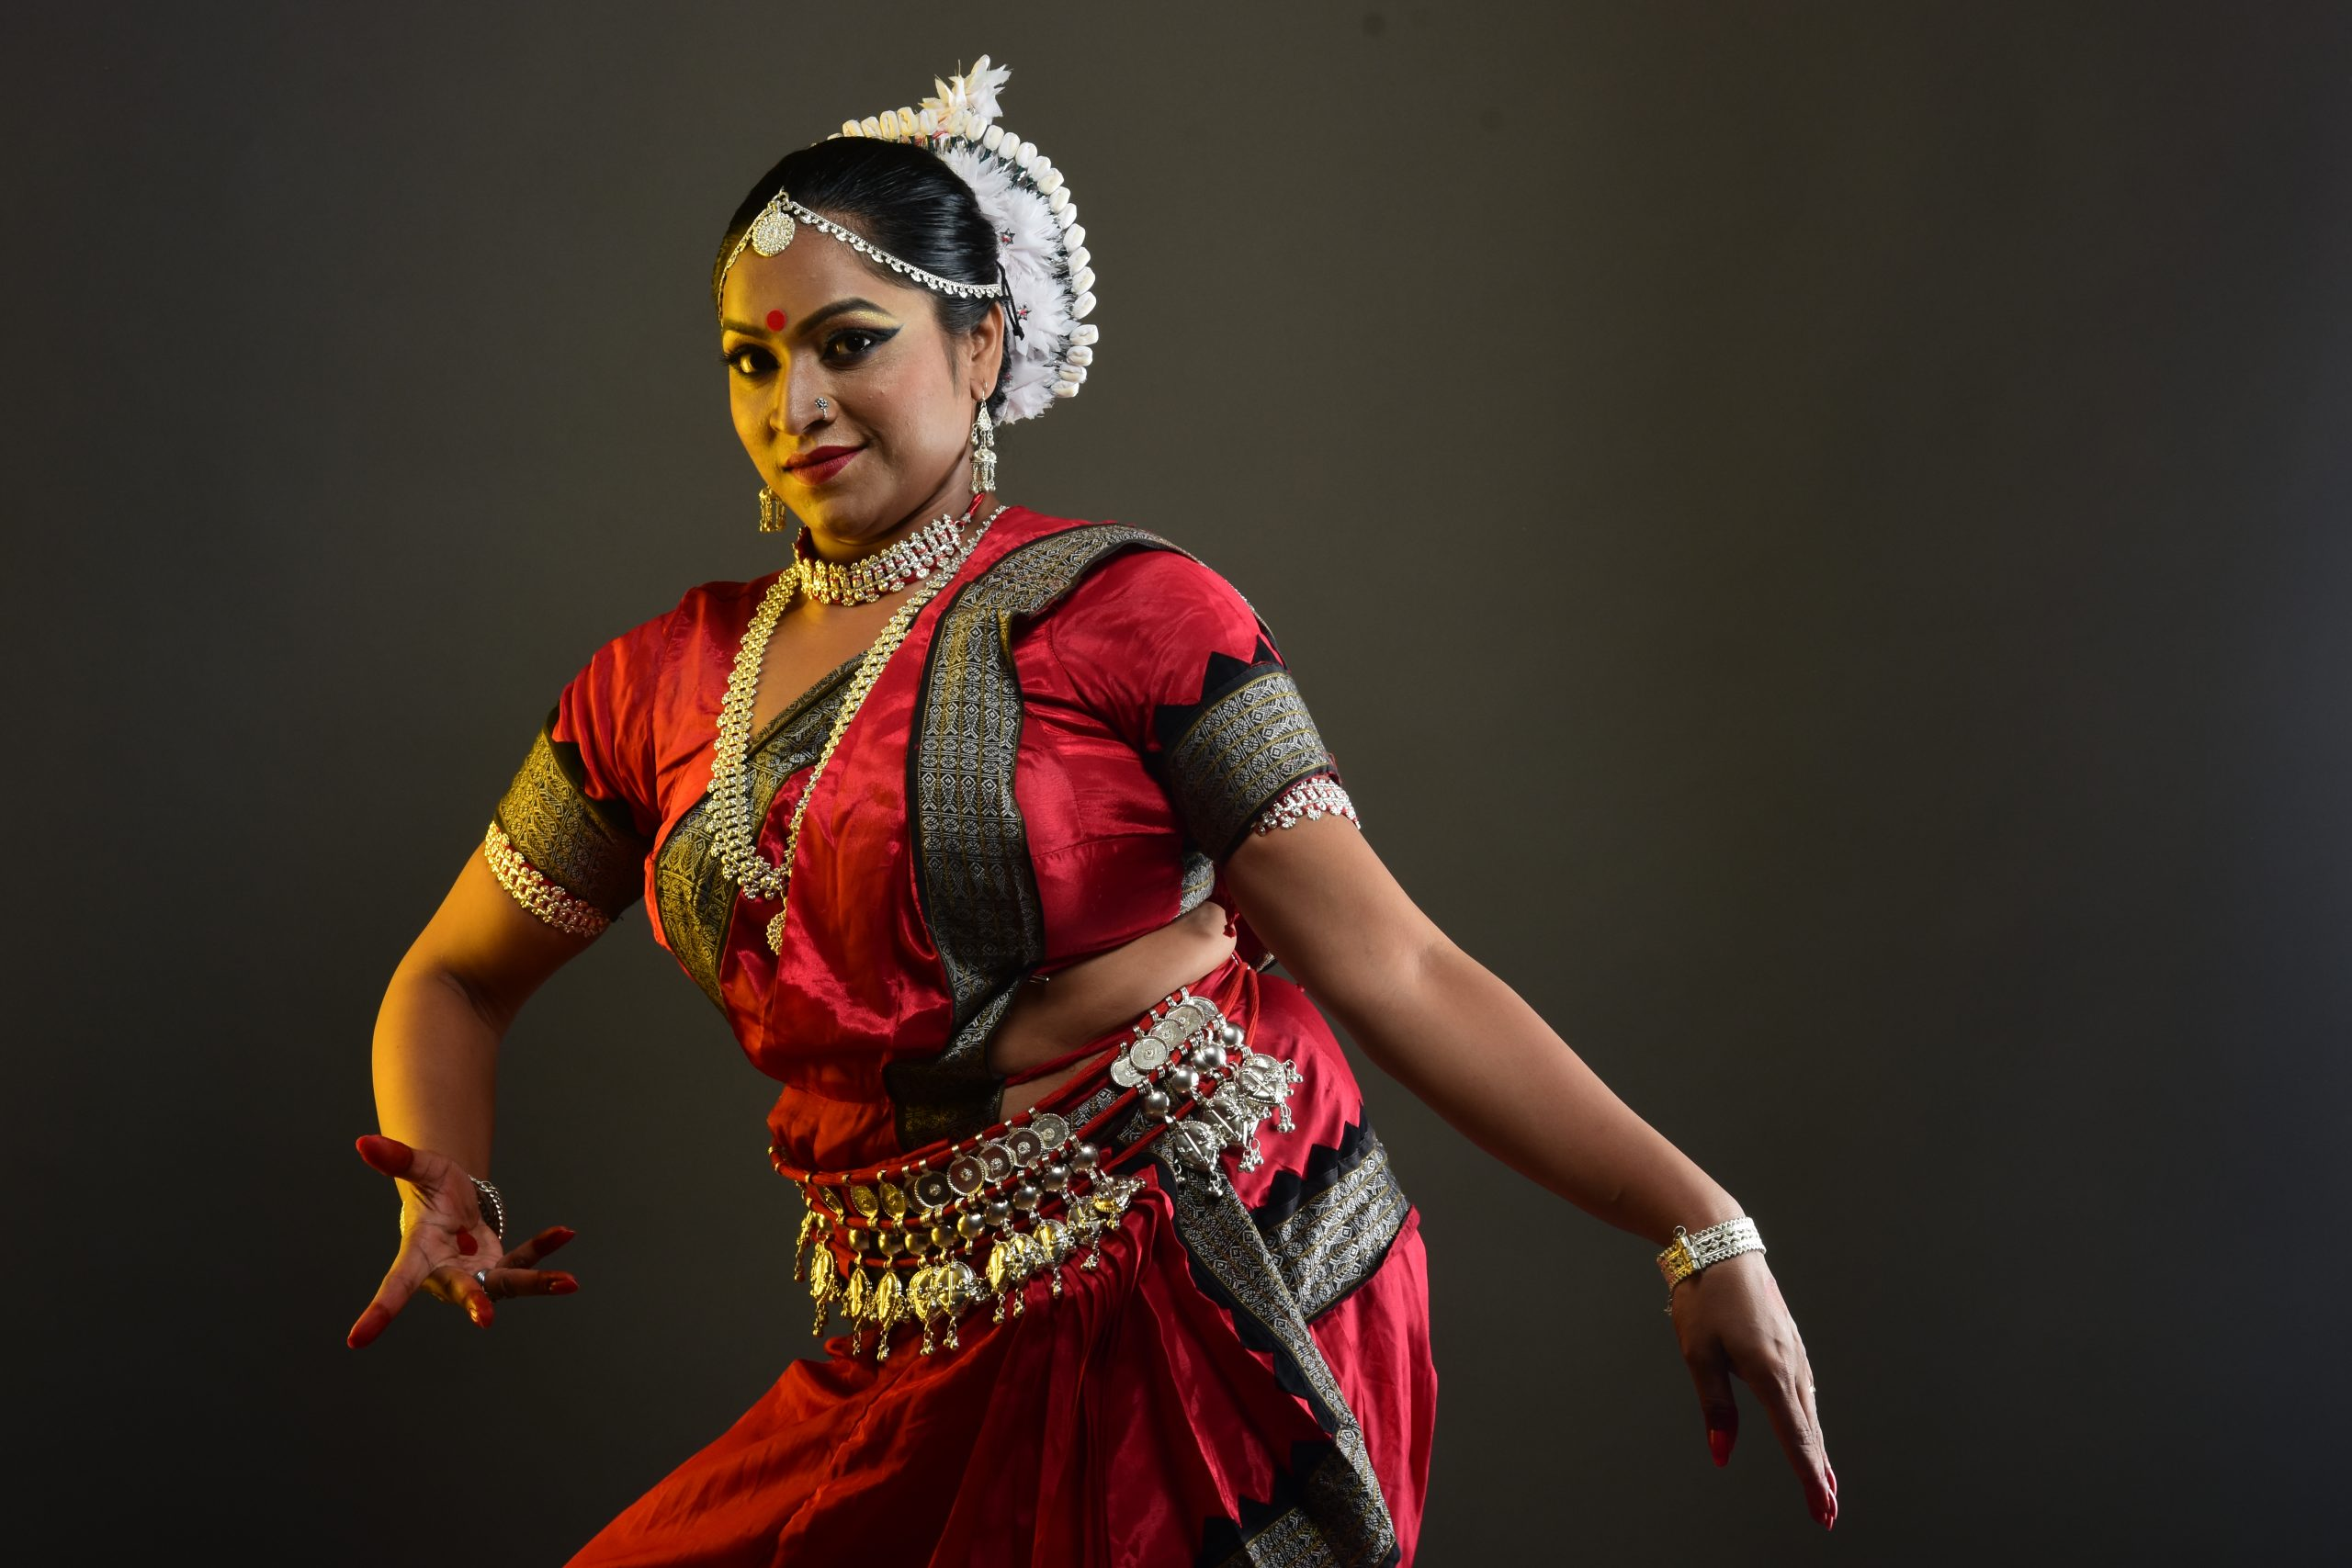 A female classical dancer